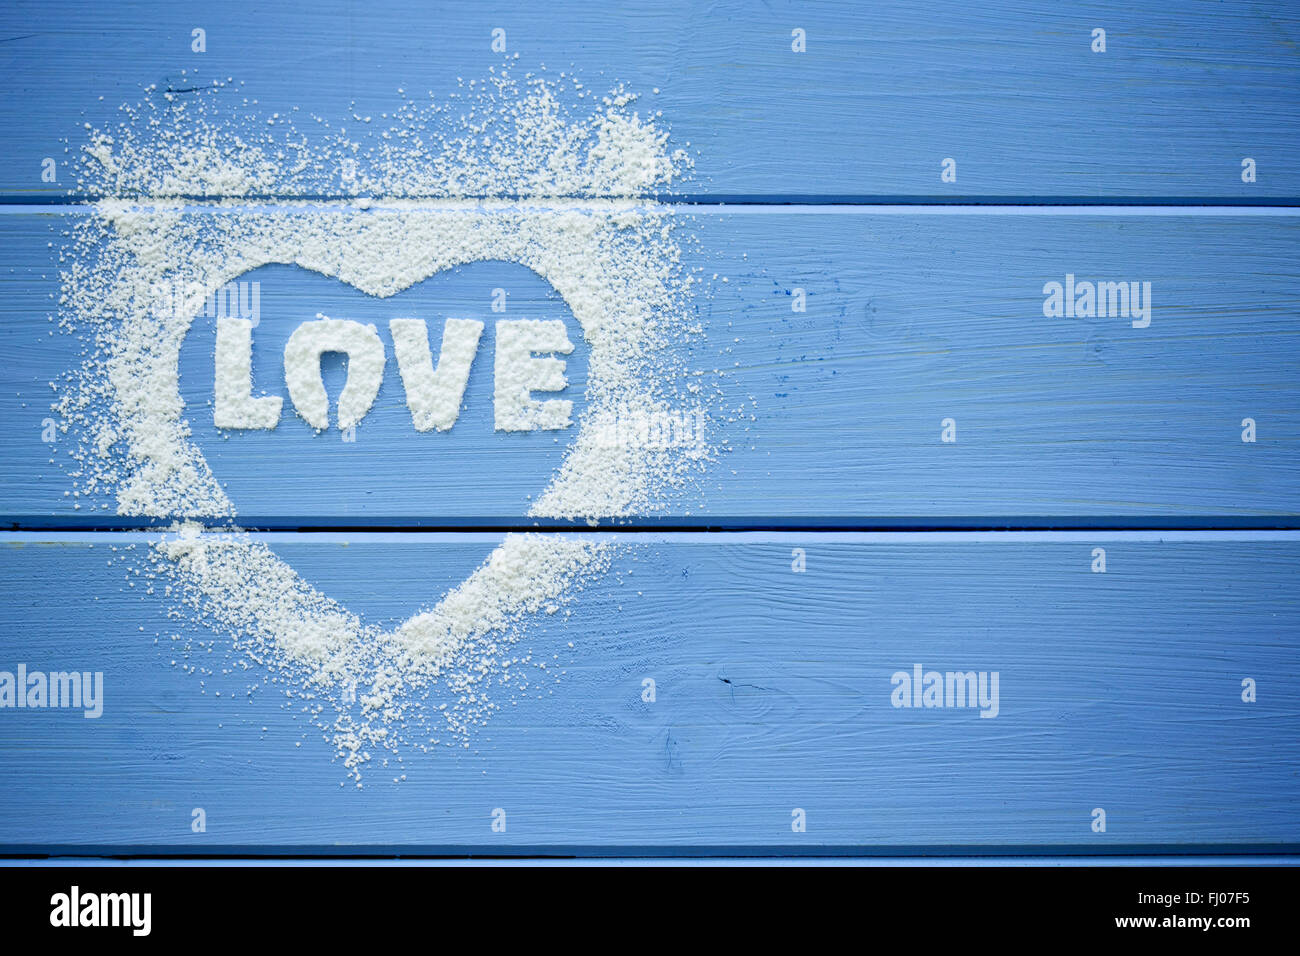 Heart shape and the word 'Love' stenciled with icing sugar - Stock Image